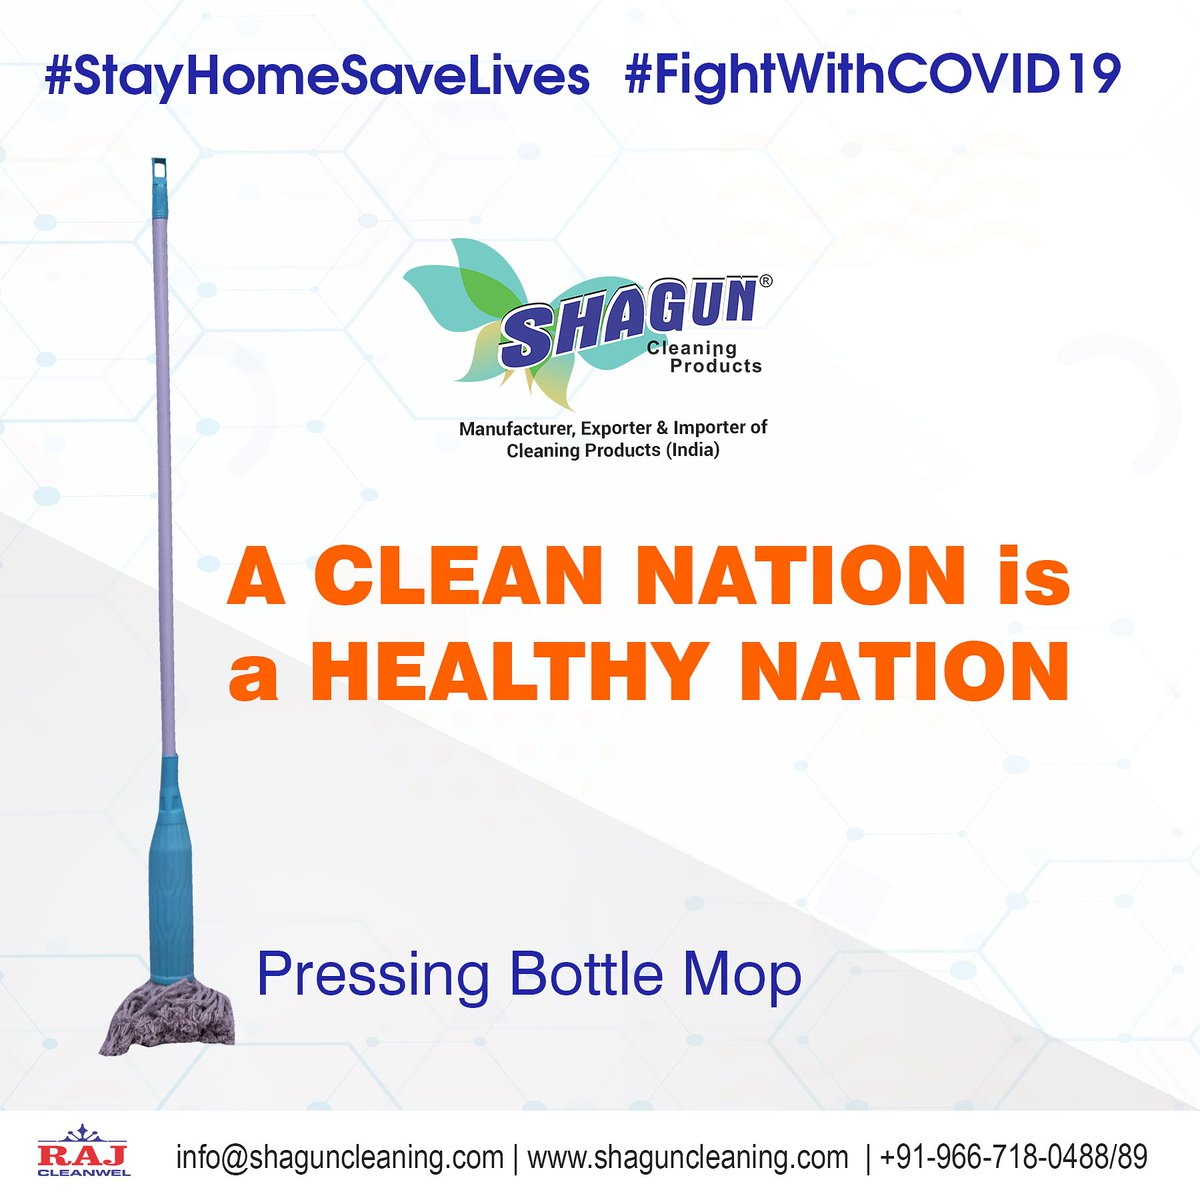 #Always Clean Your Home with #ShagunMop A #CleanNation is a #HealtyNation http://Www.shaguncleaning.com  #StayAtHome #COVID19india #coronavirus #CoronavirusOutbreak #CoronaVirusUpdate #CoronaAlert #lockdown  #ShagunCleaningProducts #Mop #cleaningproductsExporters #cleaningproducts pic.twitter.com/7S8VPw6how